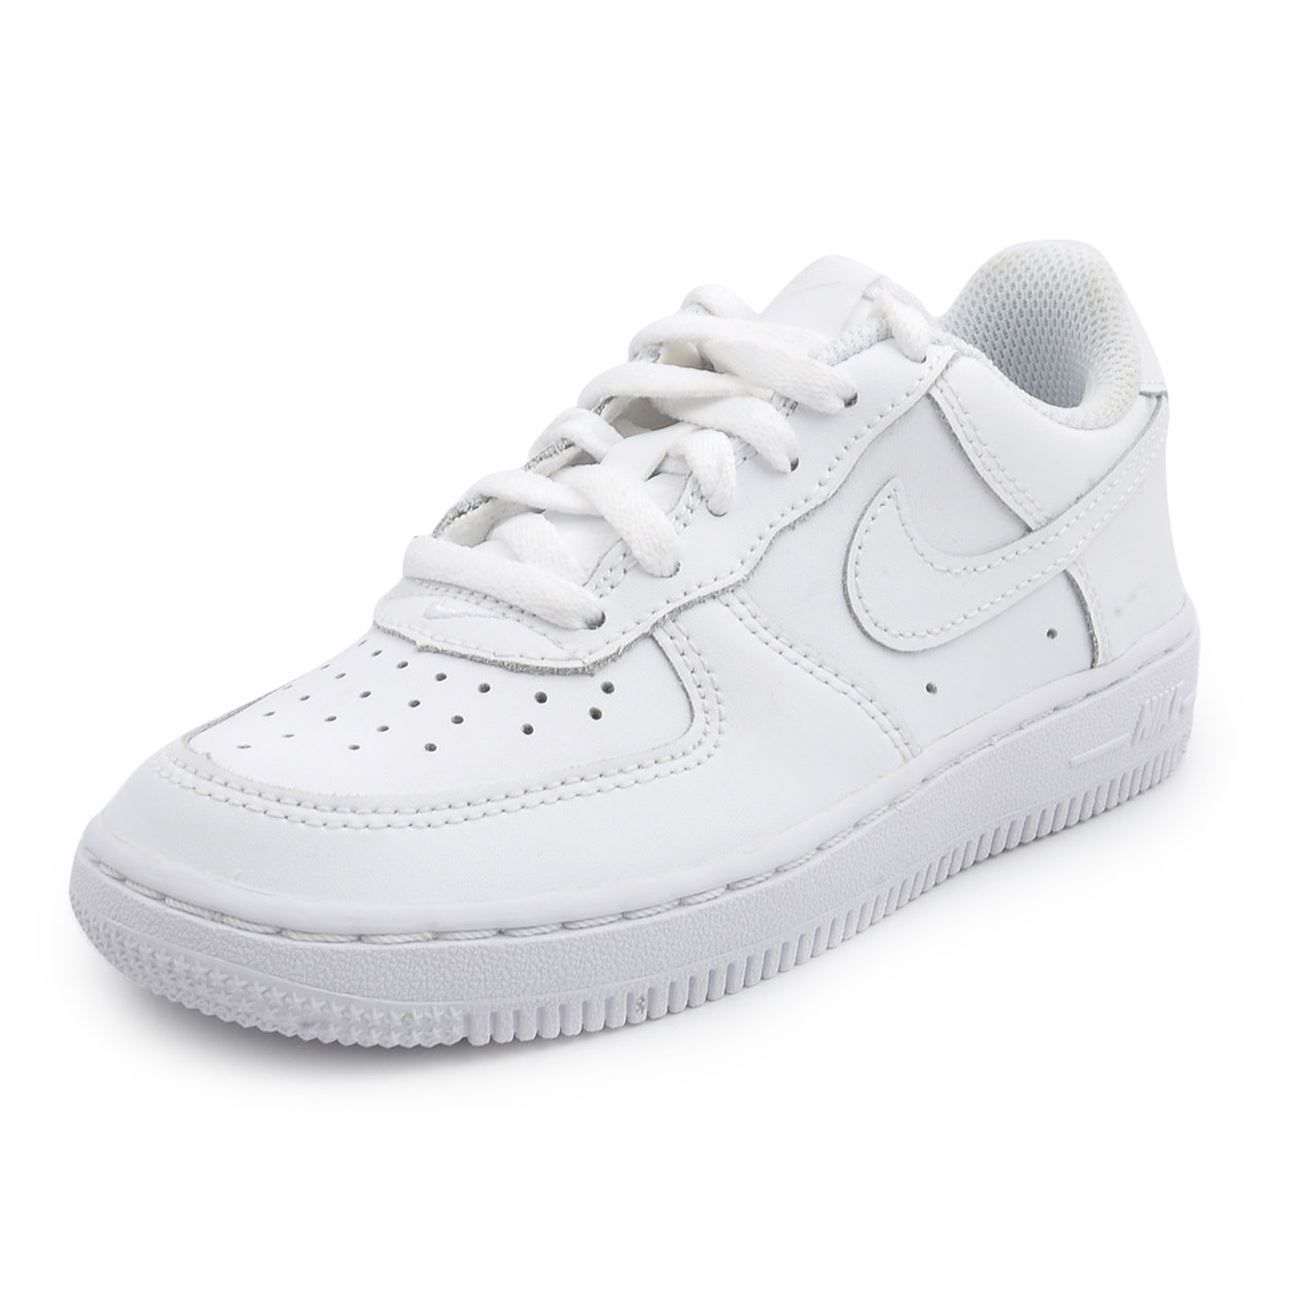 nike air force 1 low leather kids trainers ebay. Black Bedroom Furniture Sets. Home Design Ideas